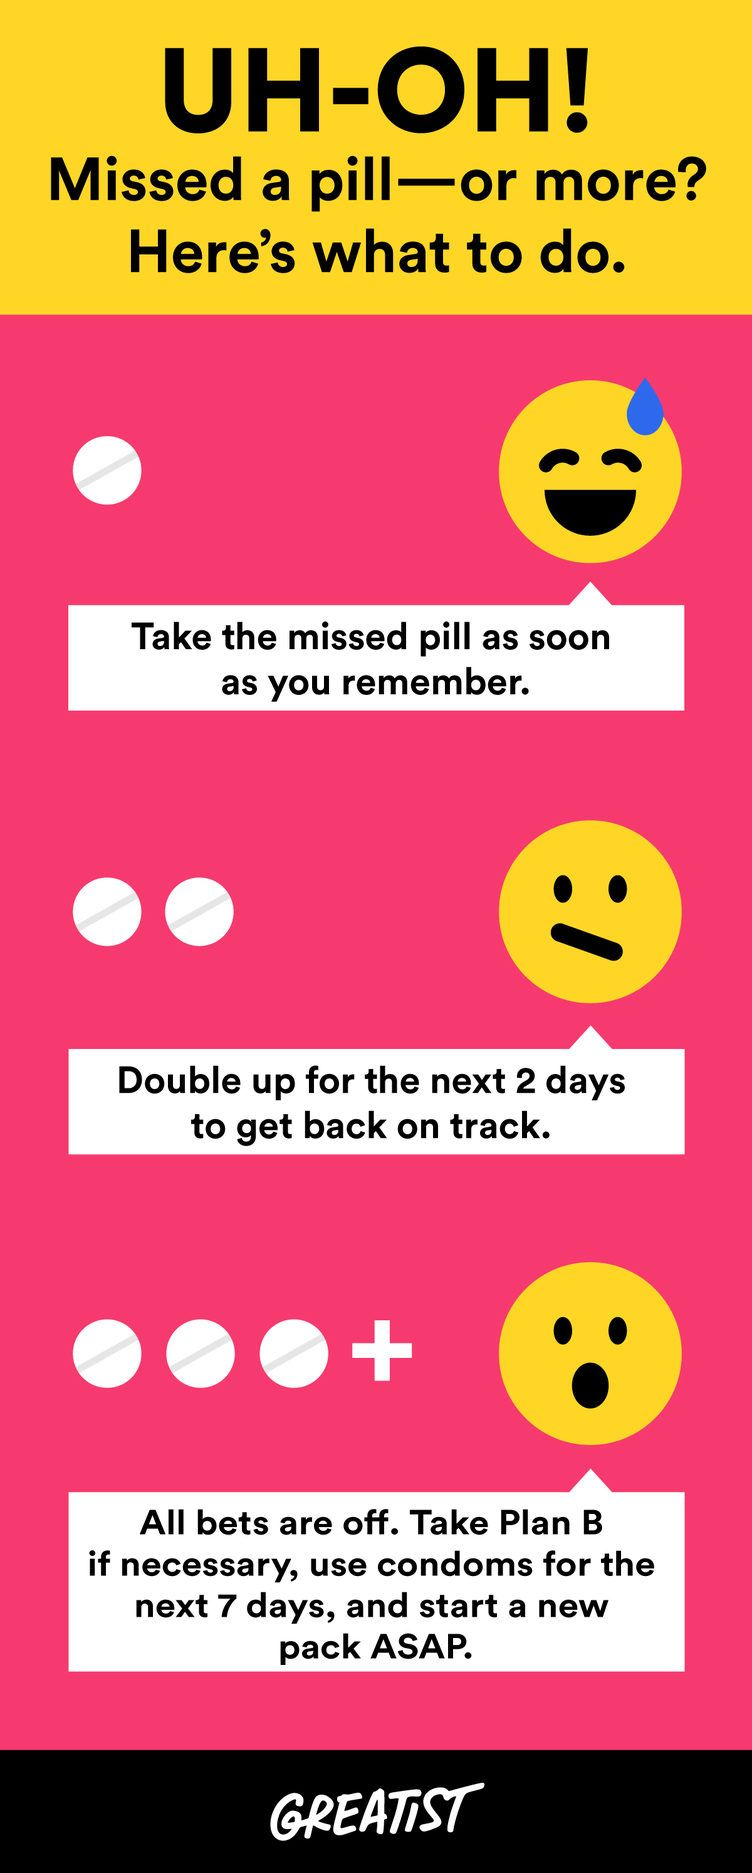 What Really Happens When You Miss or Stop Taking Birth Control Pills